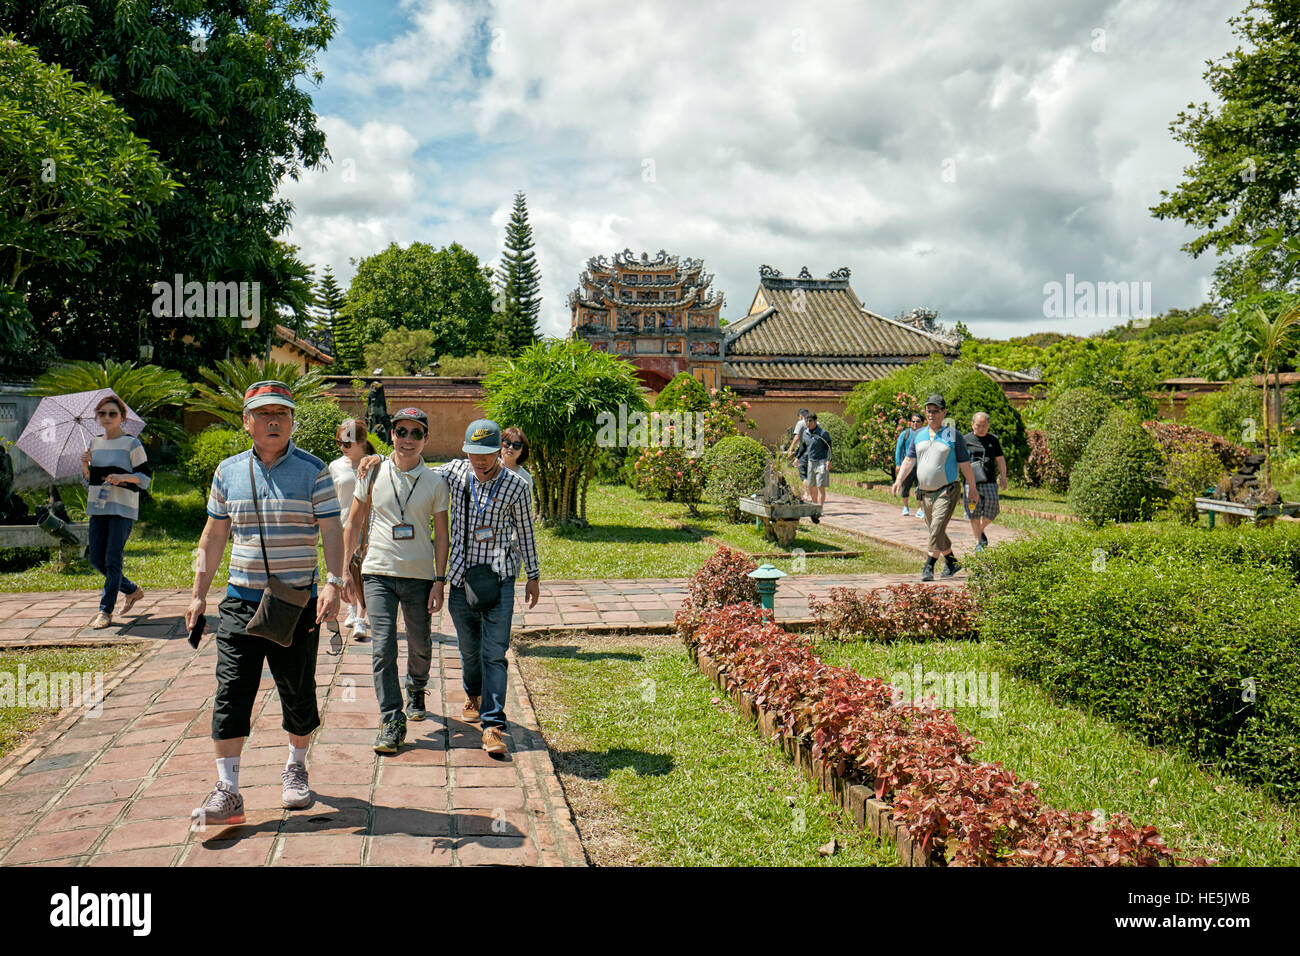 Garden at the Hung To Mieu Temple. Imperial City (The Citadel), Hue, Vietnam. - Stock Image